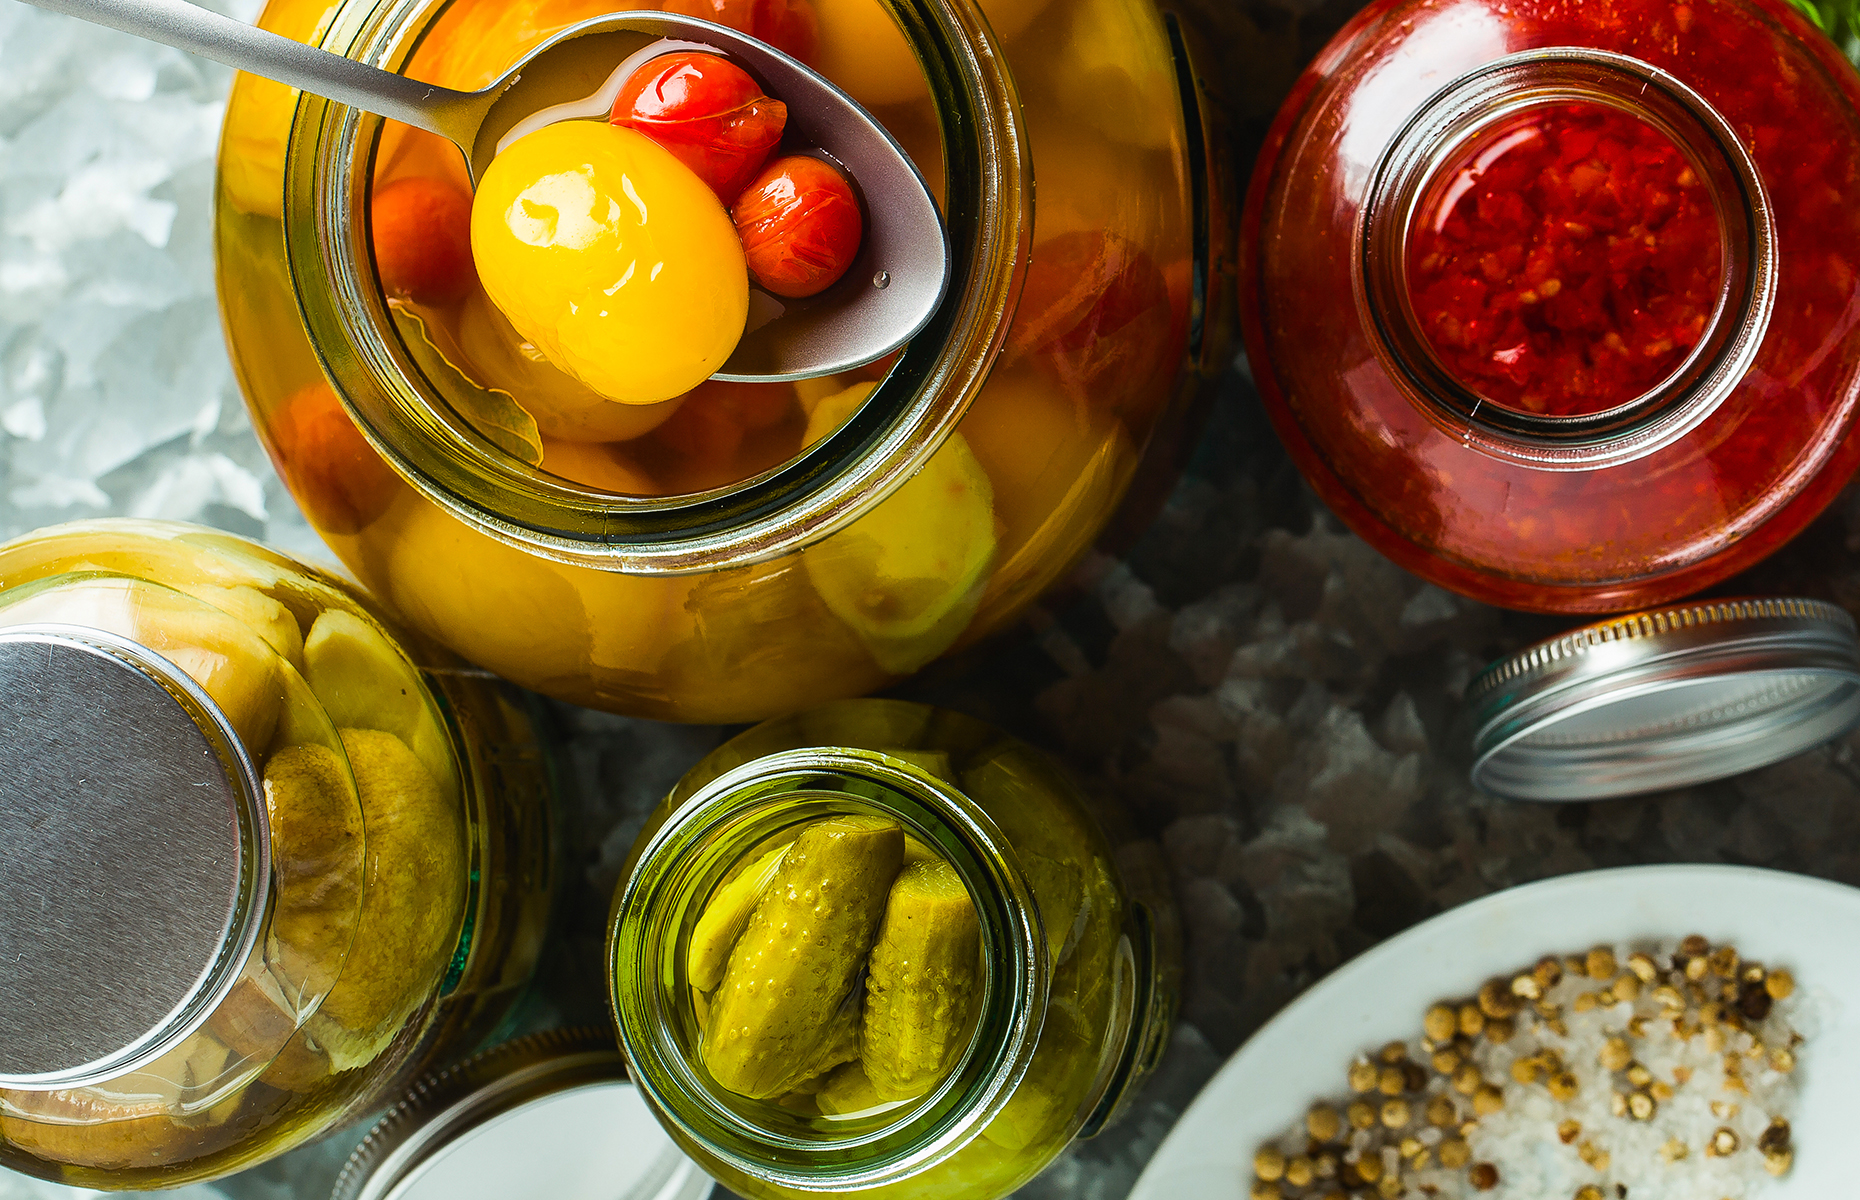 Jars of different pickles